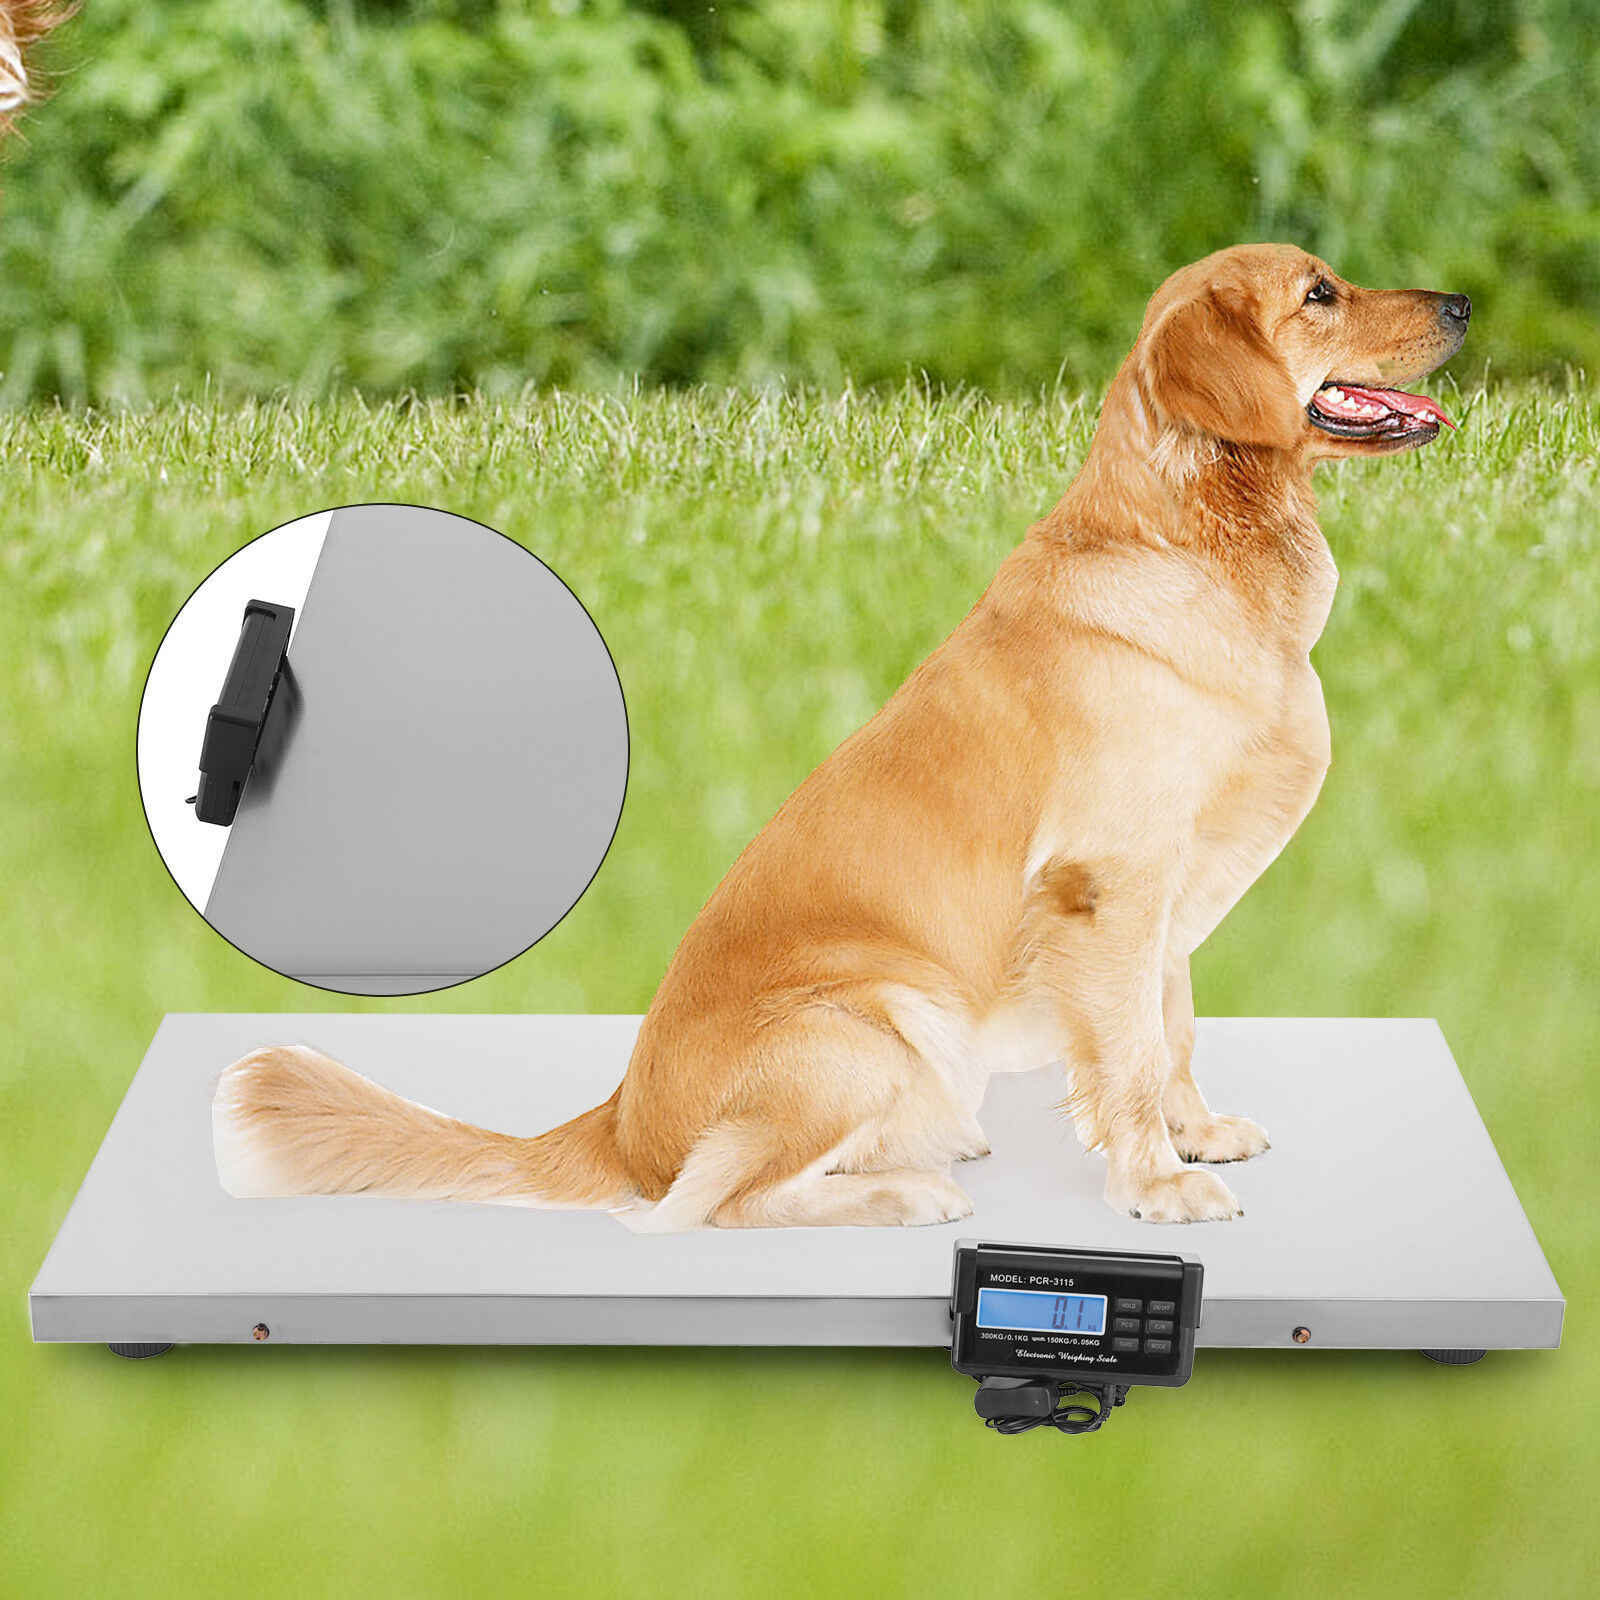 660 Pounds Capacity Digital Vet Scale Weighing Scale for Pet Cat Dog Sheep Hog